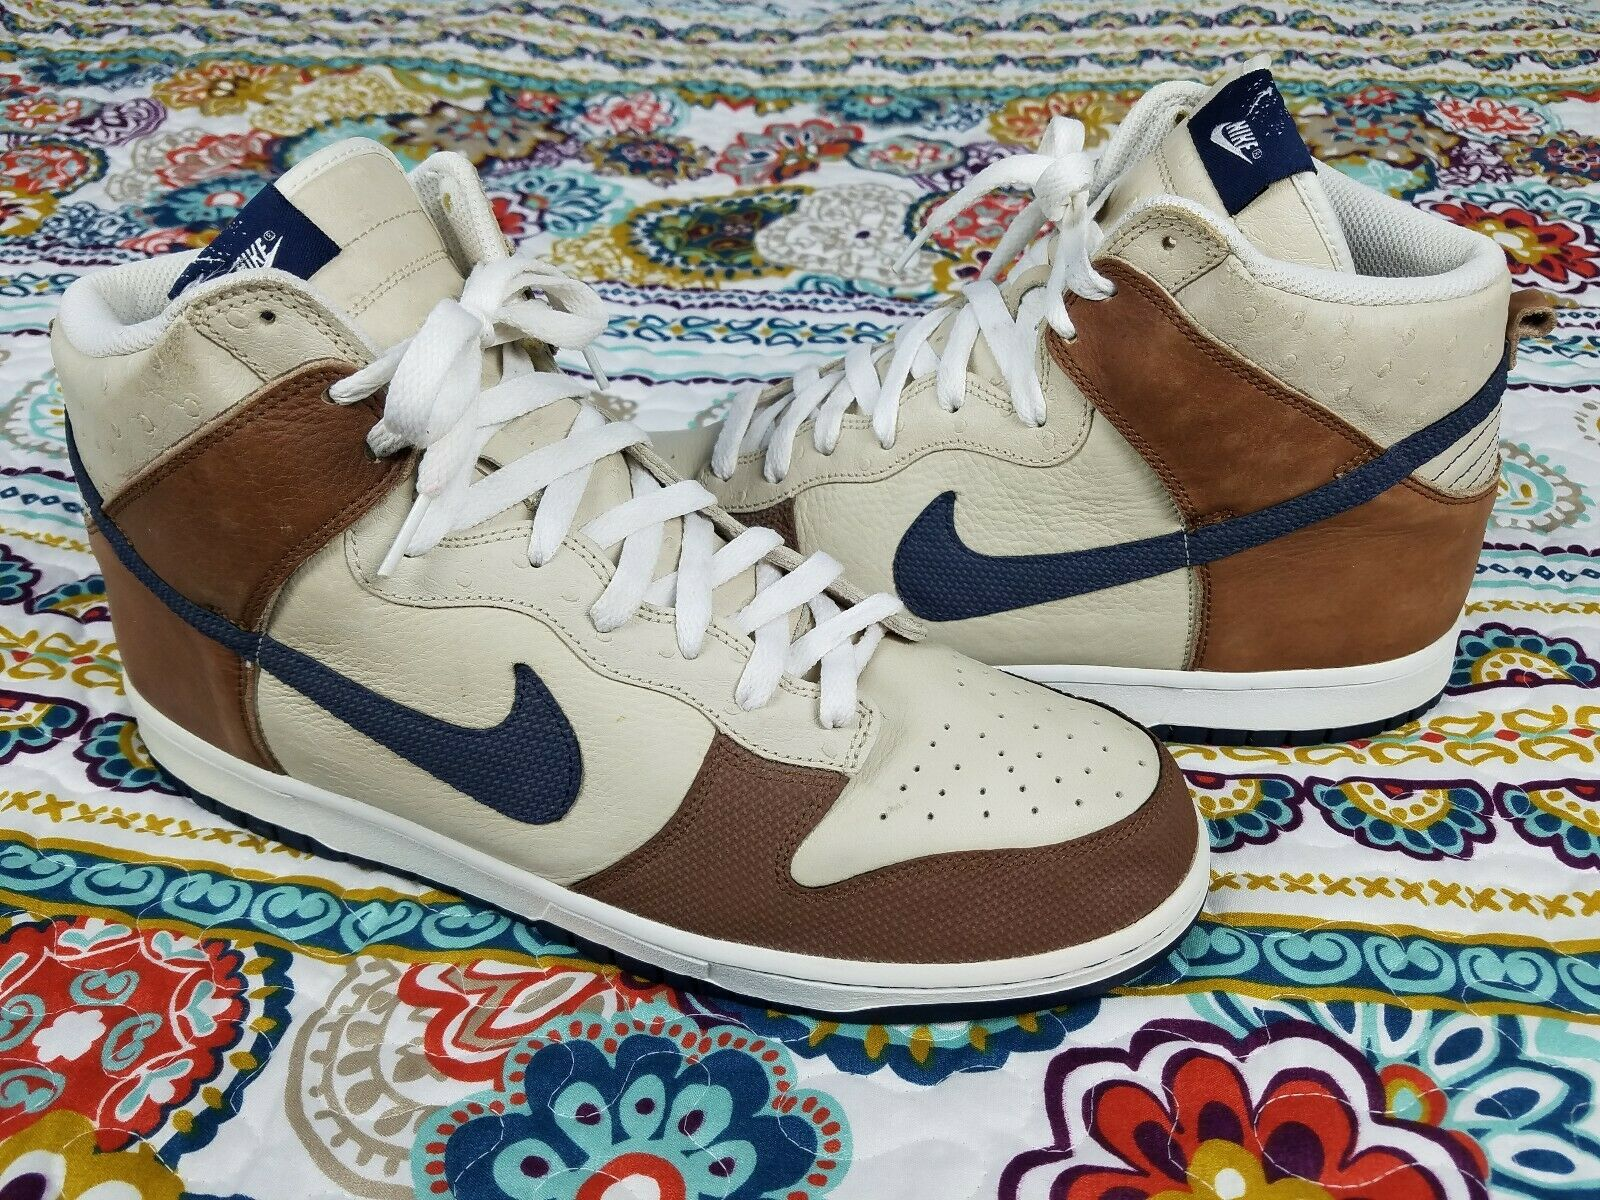 Nike Air Dunk SB High 2007 Ostrich Leather Tobacco Brown Sz 13 Mid shoes sneaker